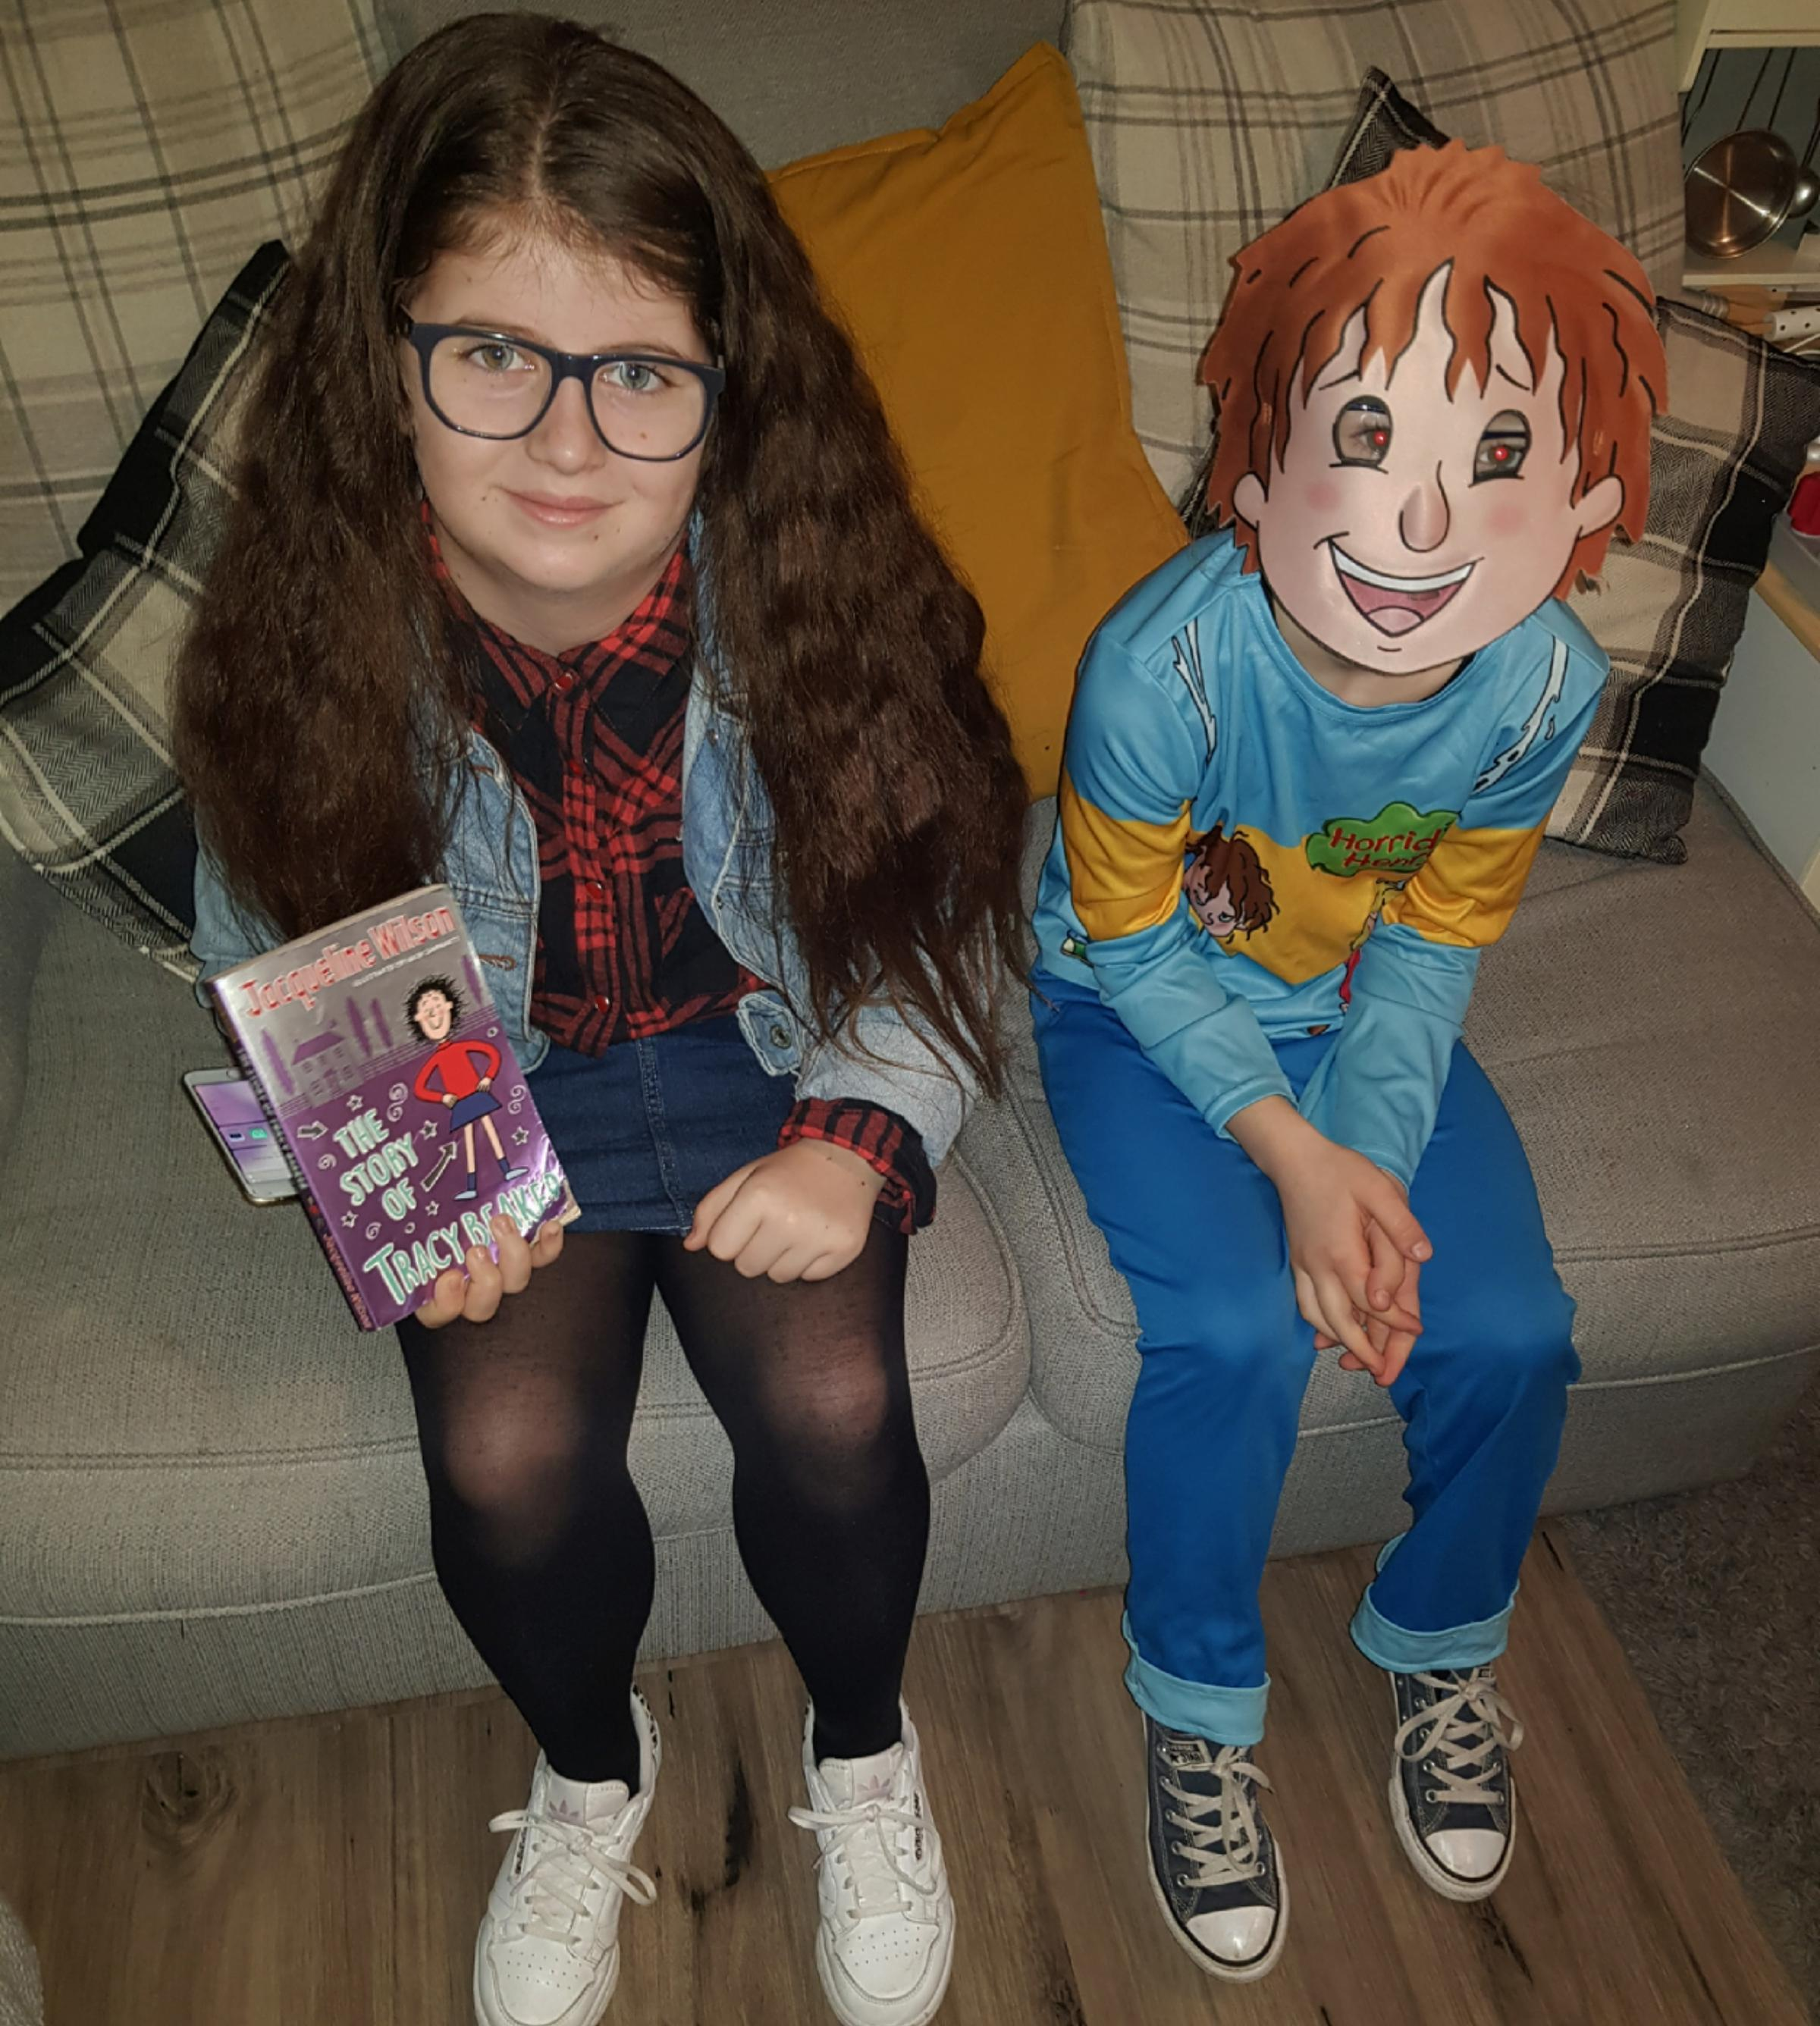 Droitwich Advertiser: Ruby 10 as Tracy Beaker & Millie 8 as Horrid Henry.